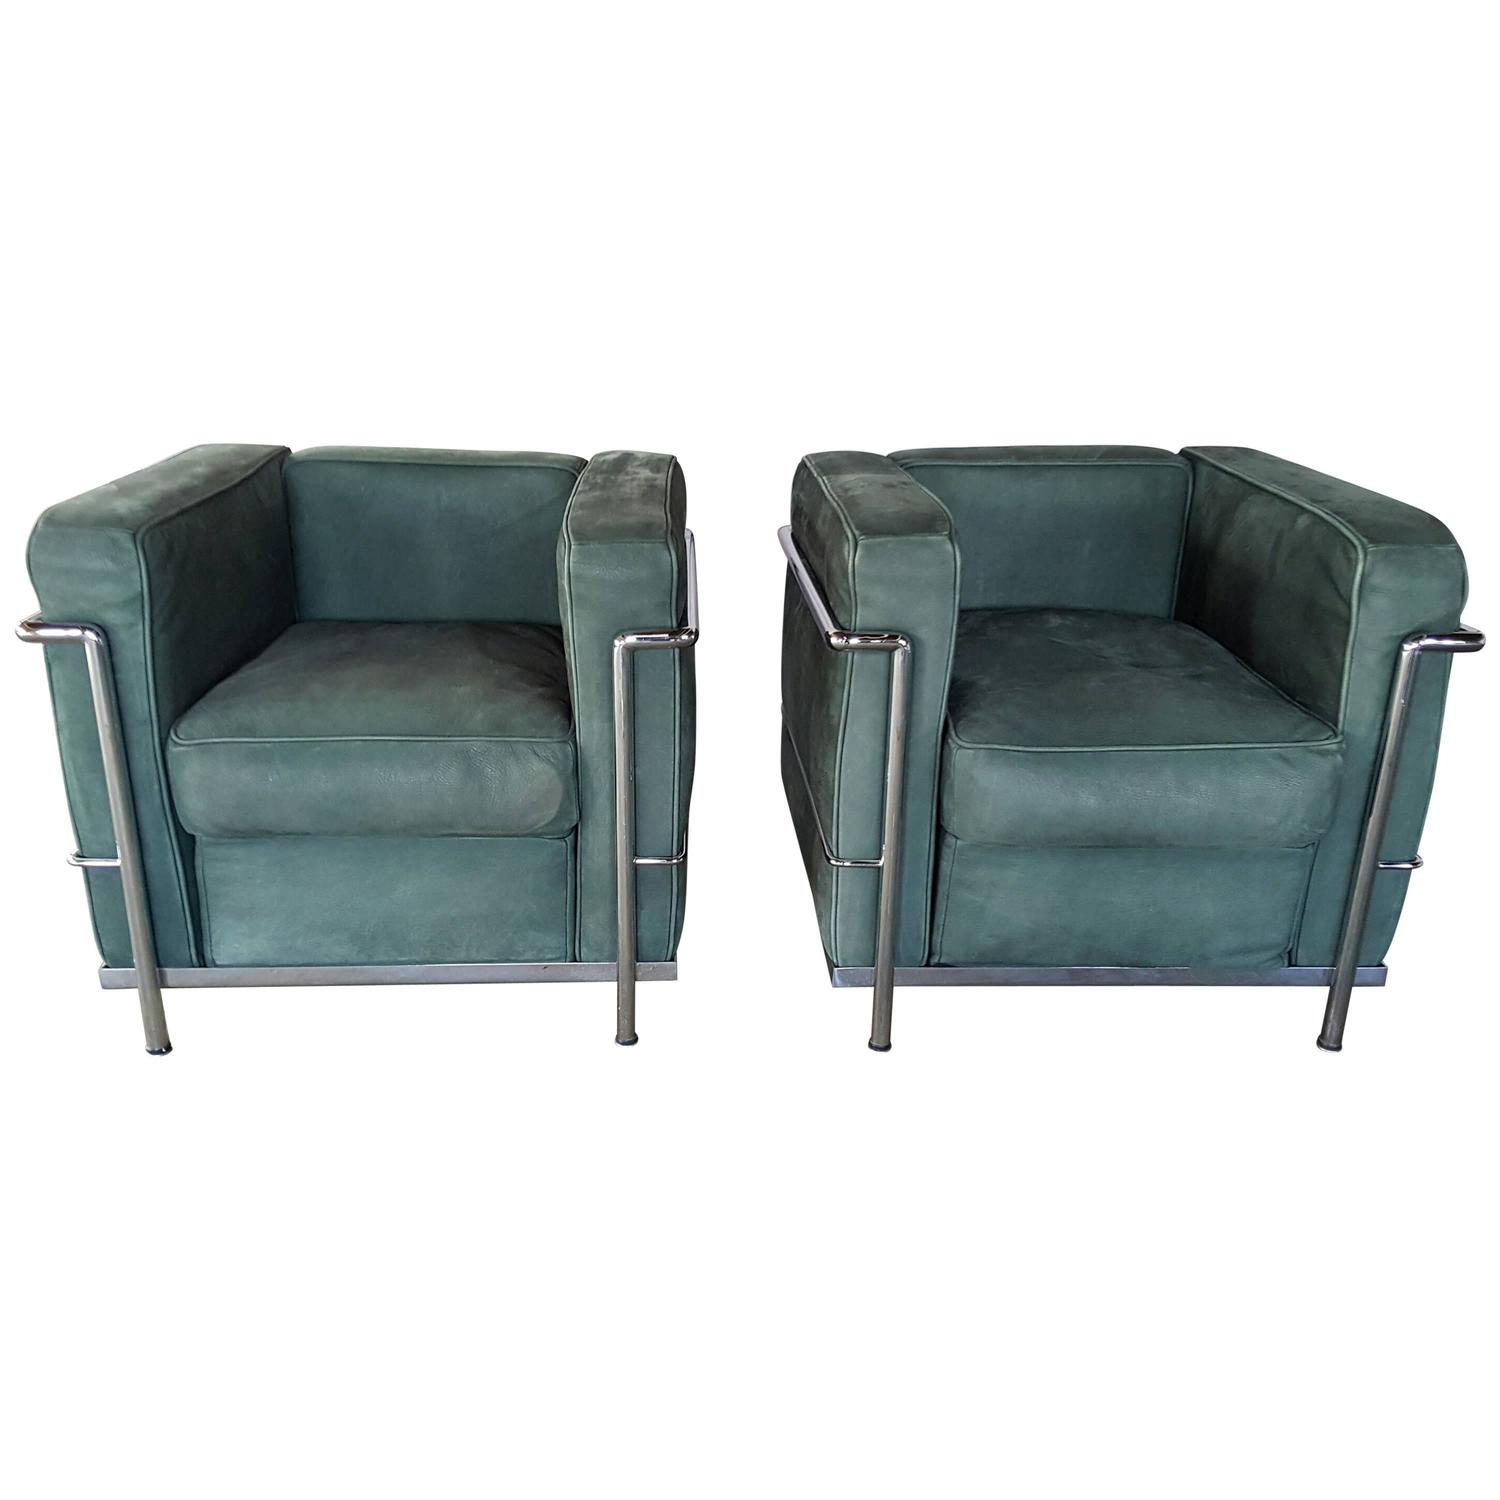 Pair of le corbusier lc2 lounge chairs green suede and for Le corbusier lc2